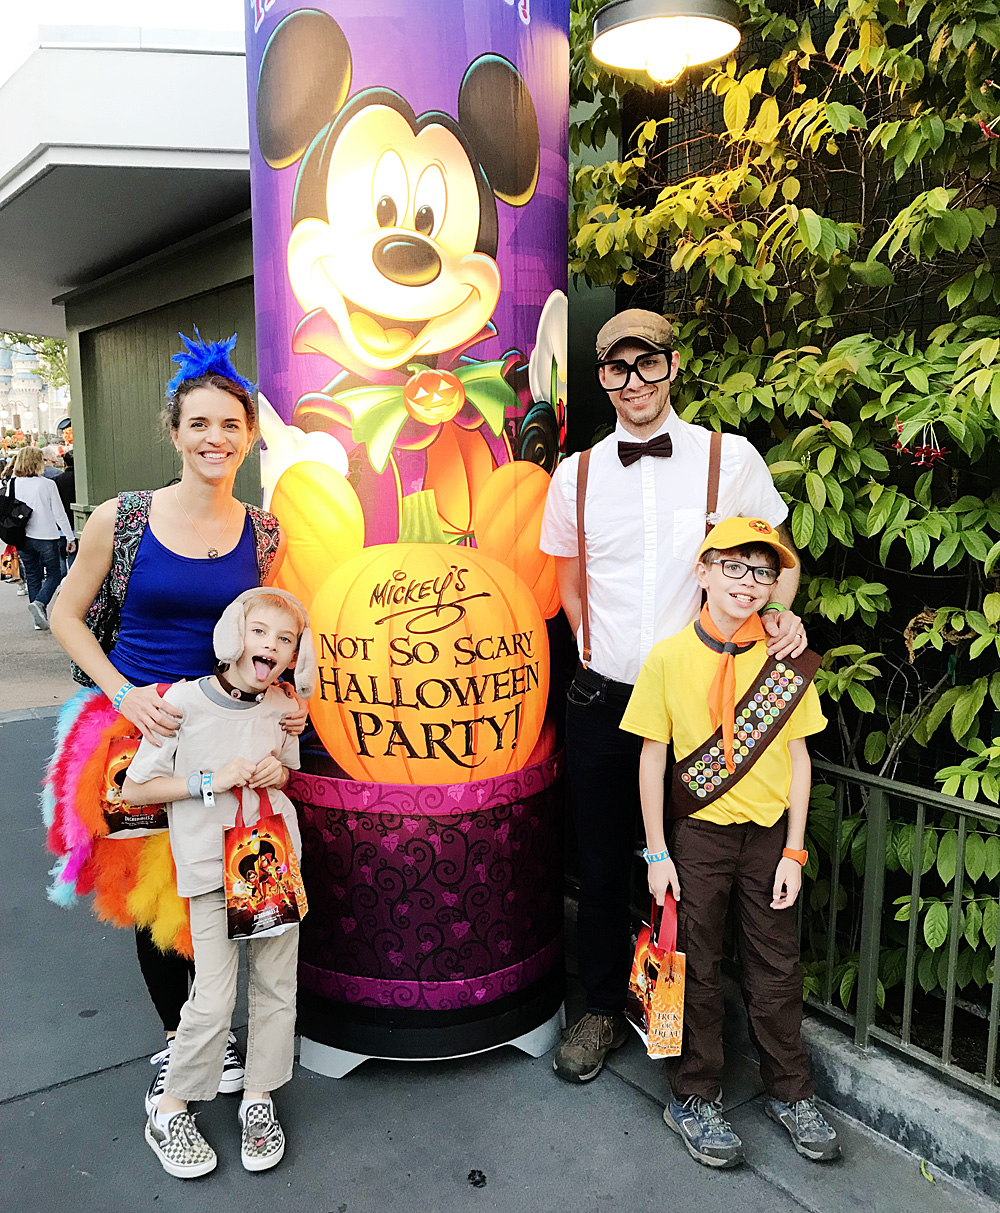 Mickey's Not-So-Scary Halloween Party costumes